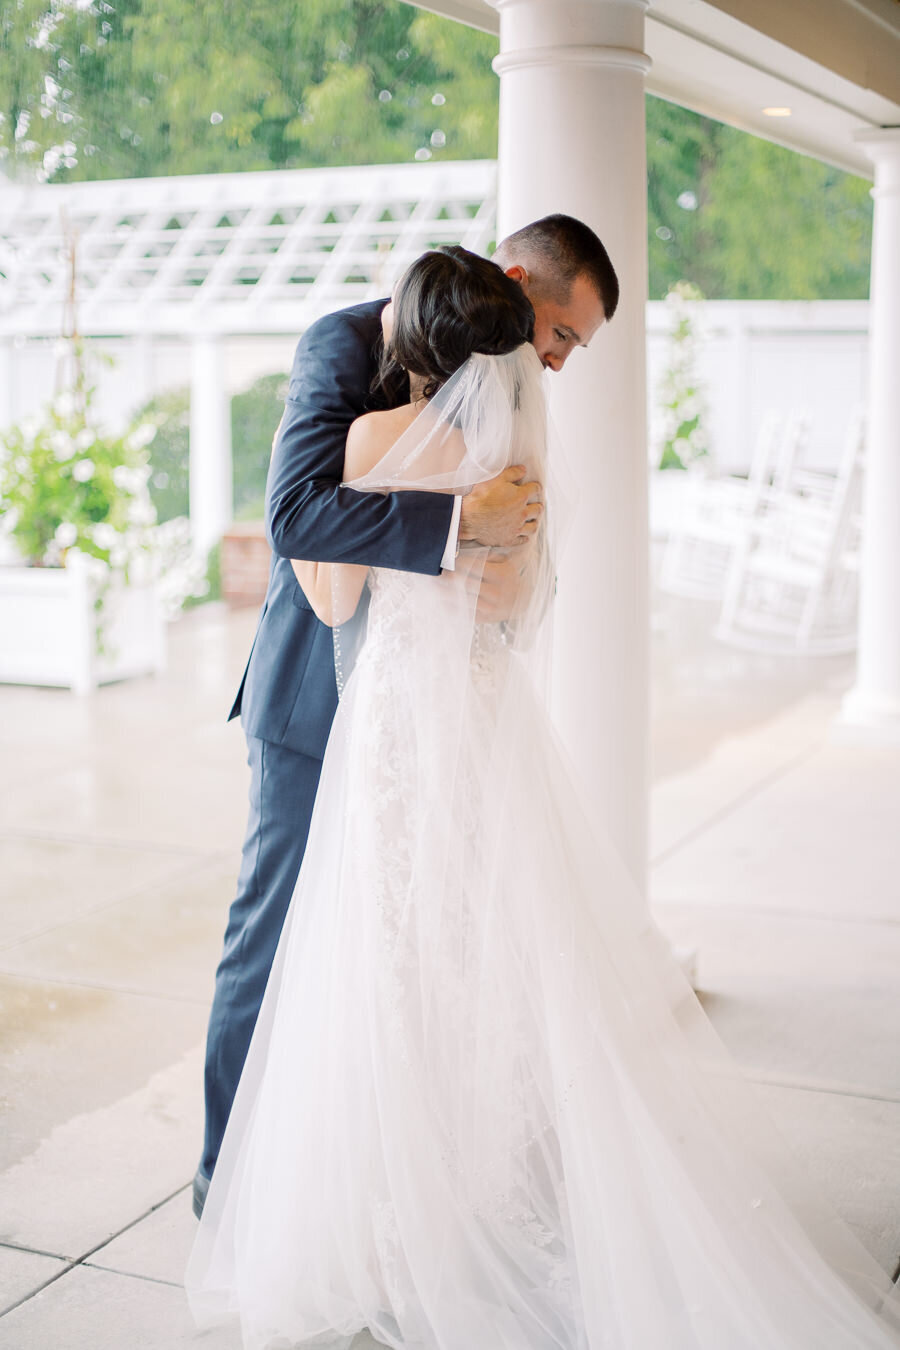 Chesapeake_Bay_Beach_Club_Stevensville_Maryland_Wedding_Megan_Harris_Photography_Blog-30